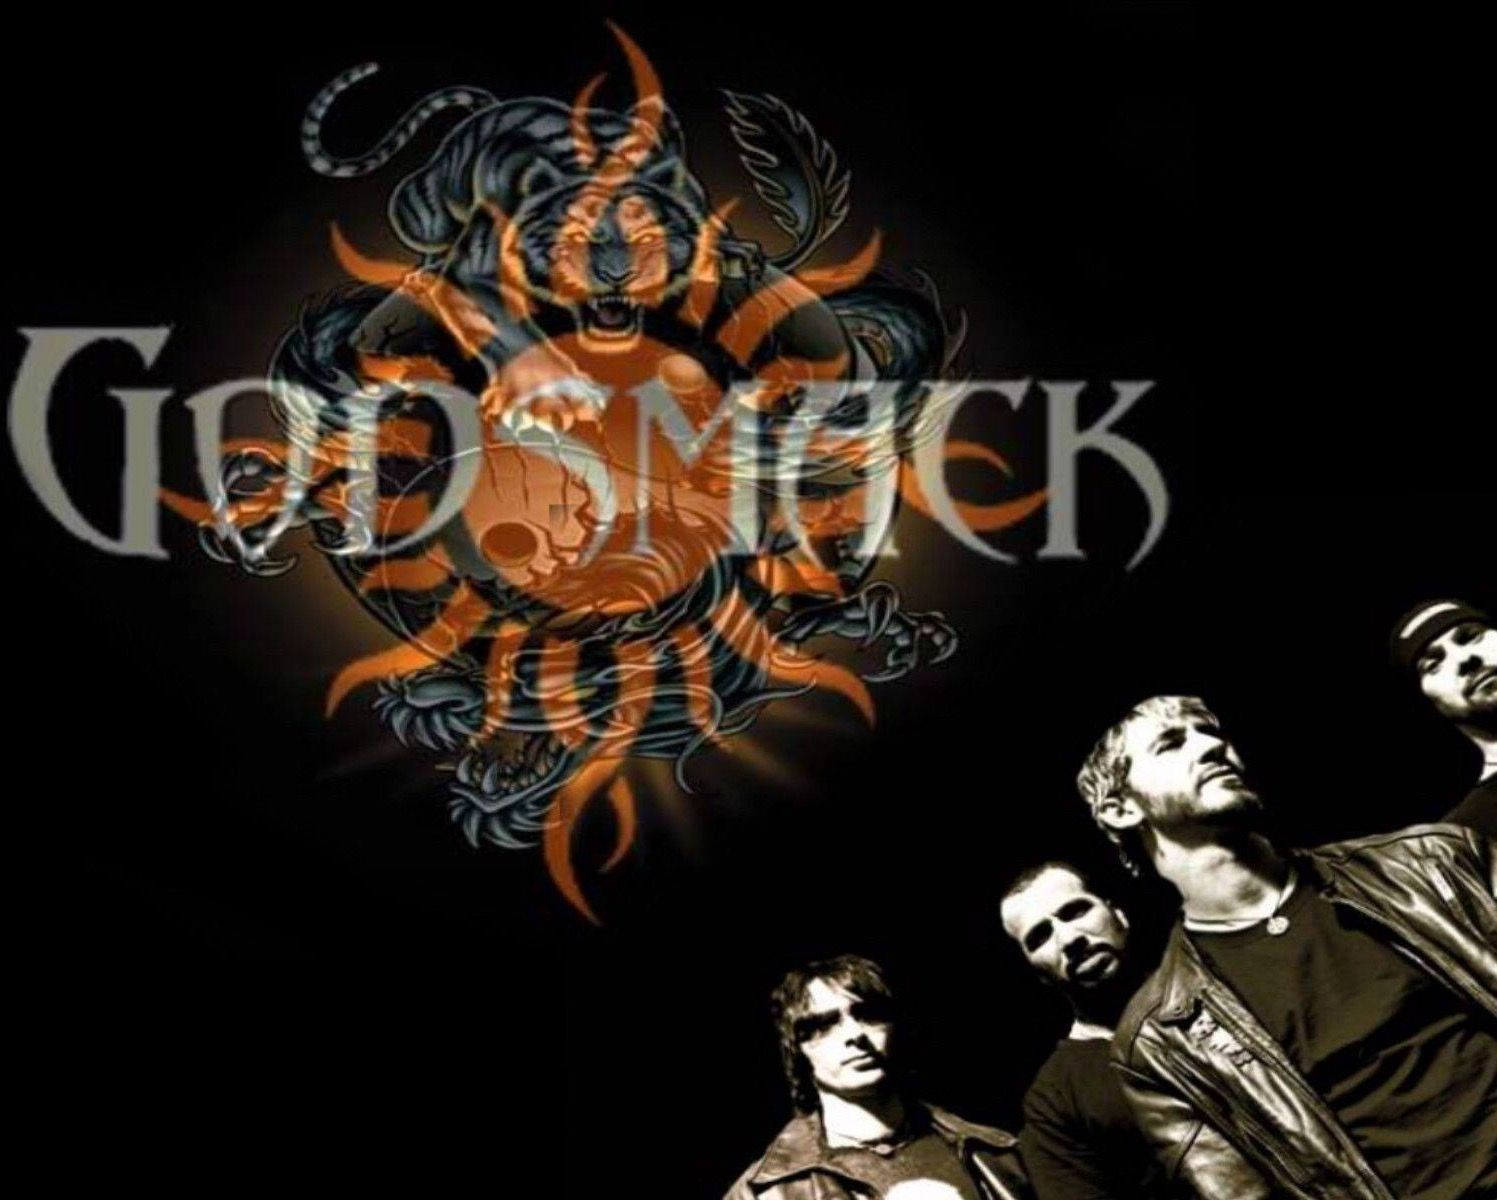 Pin By Brian Cooper On Godsmack Wallpaper Free Christmas Wallpaper Downloads Music Images